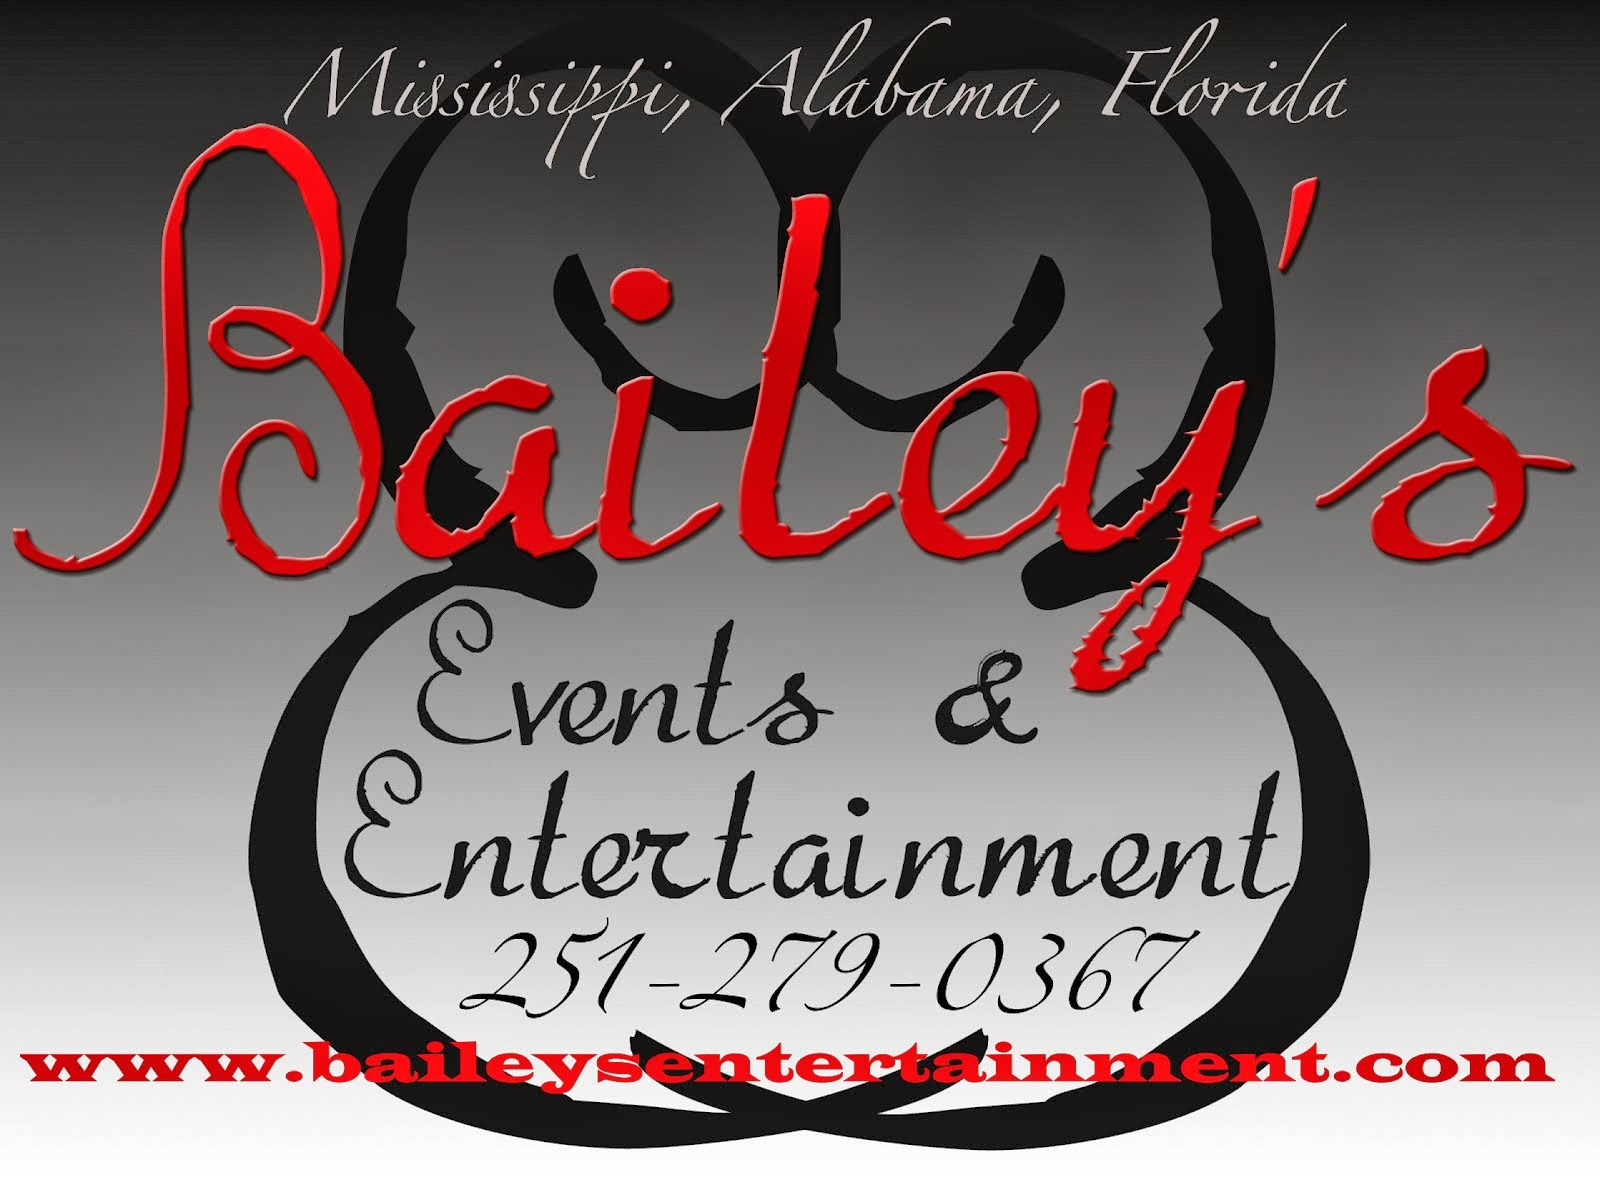 Bailey's Entertainment